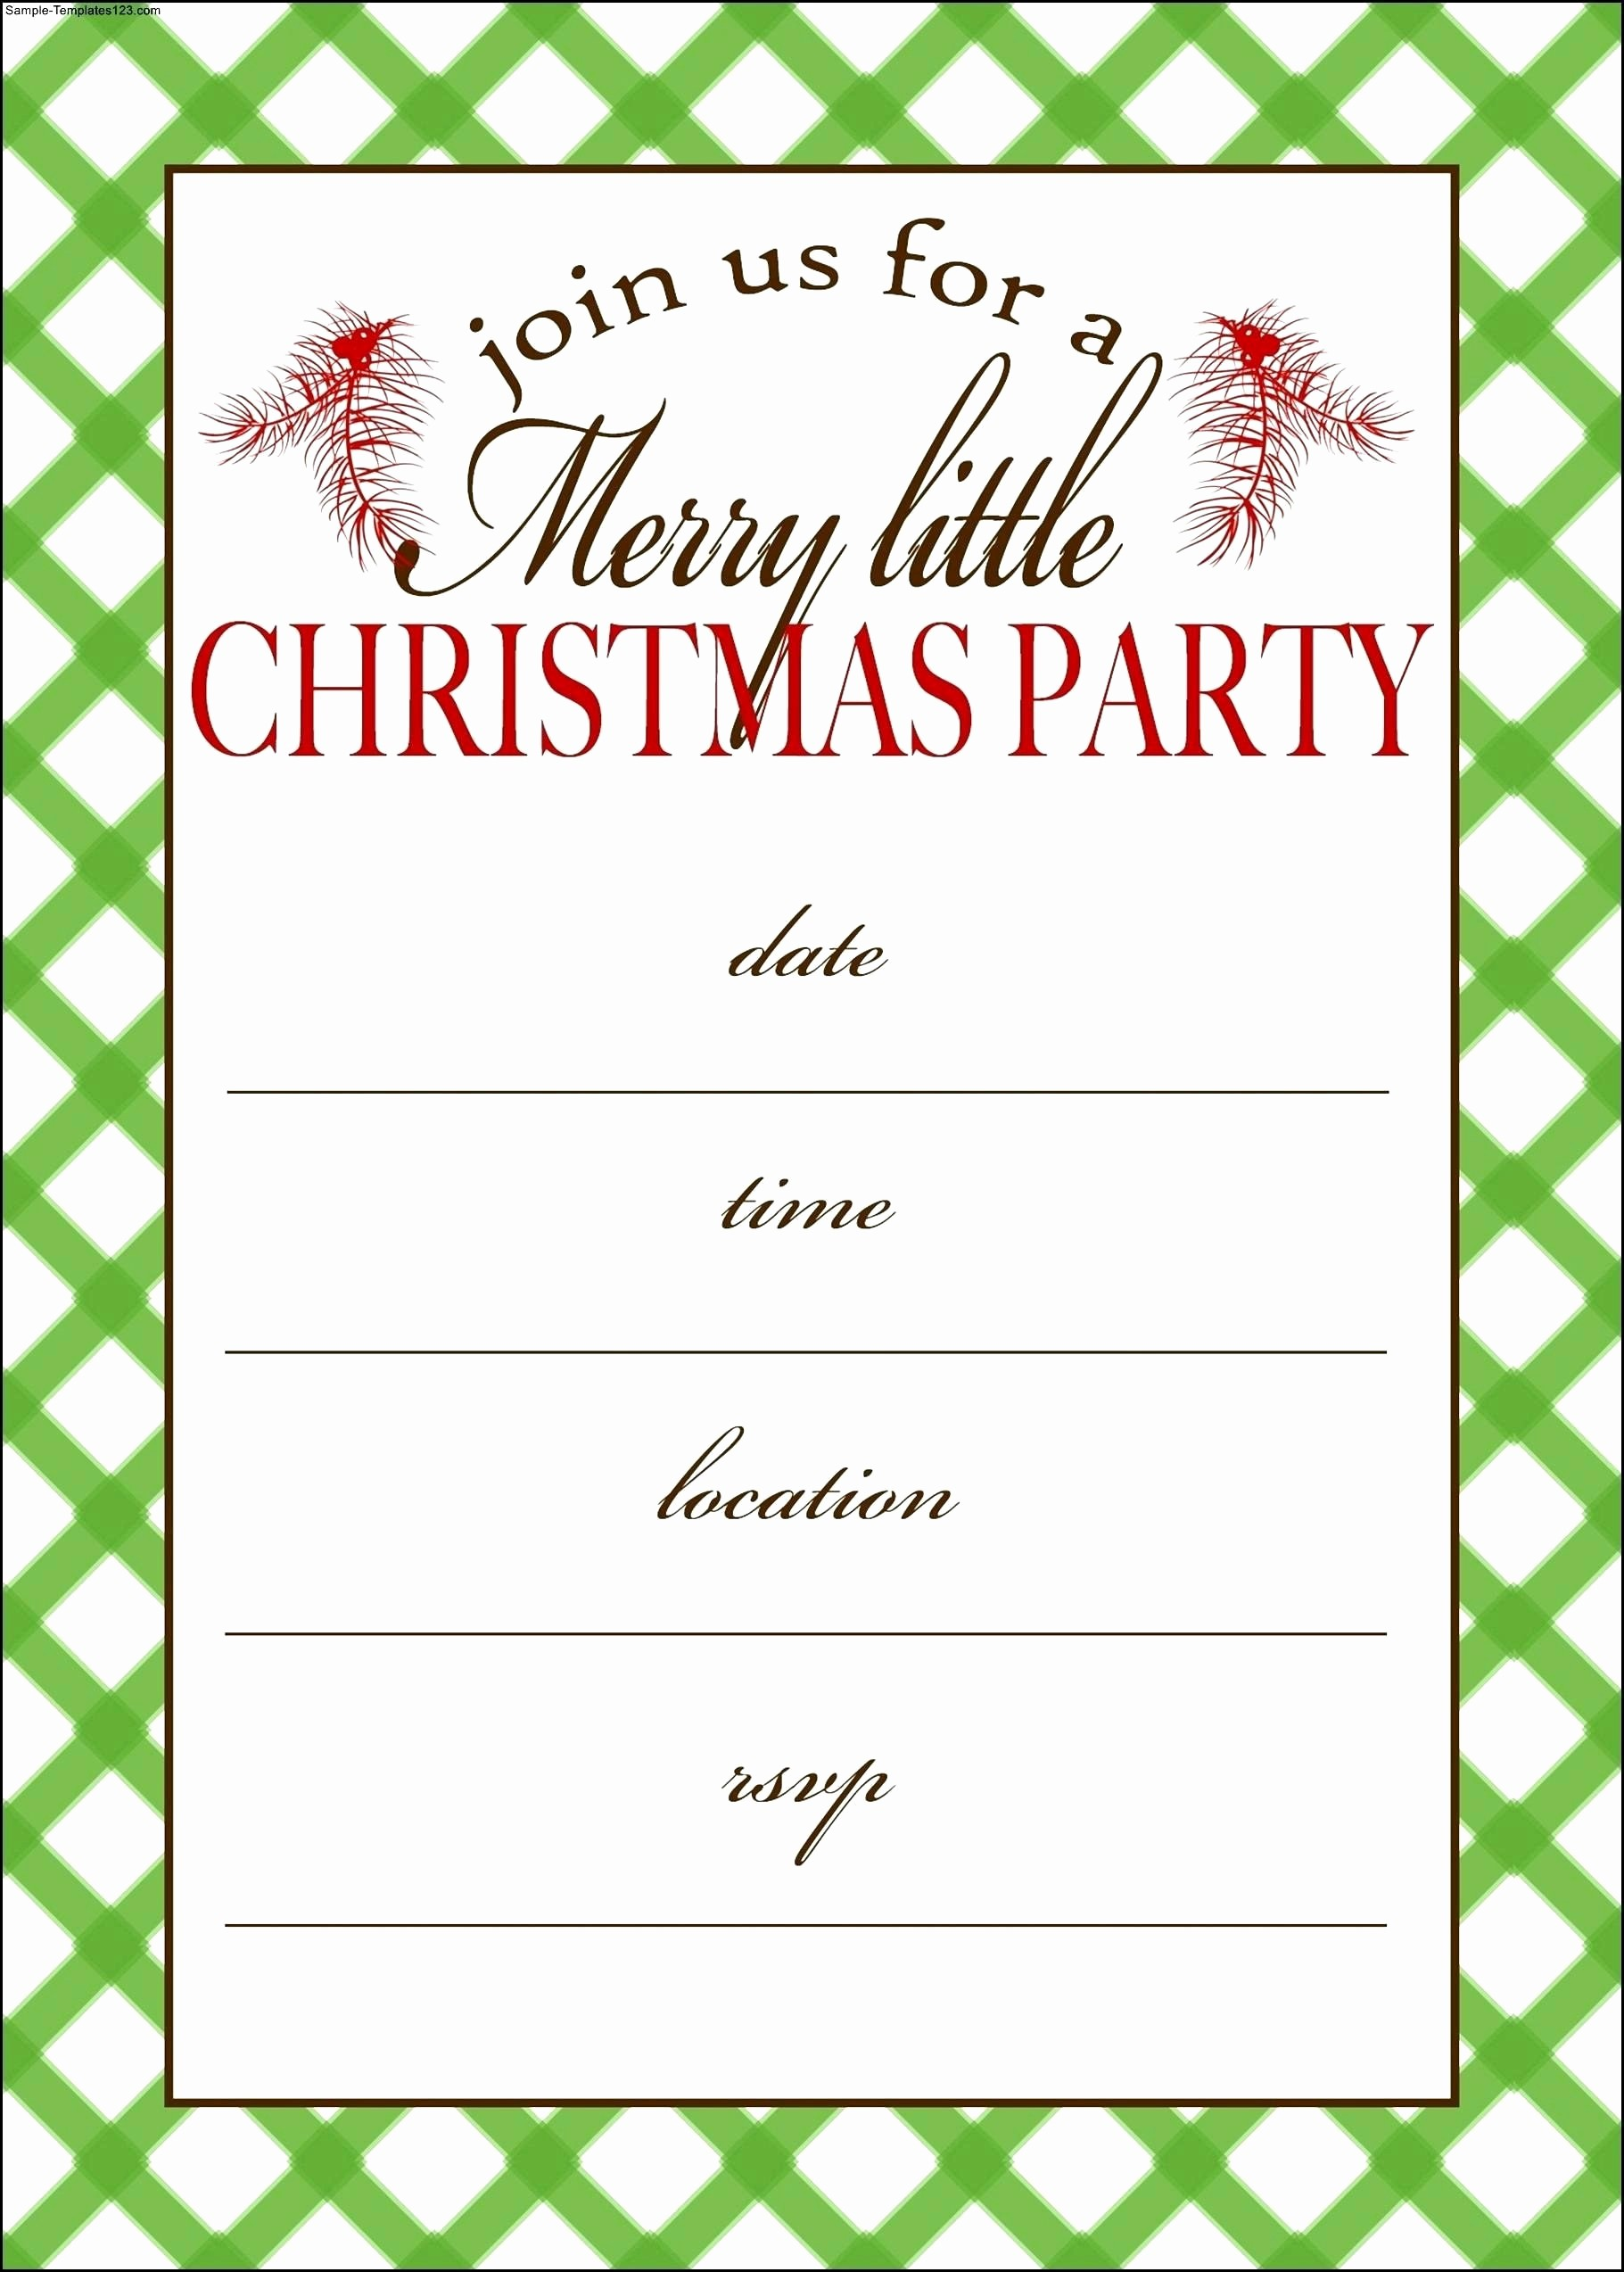 Year End Party Invitation Templates Inspirational End the Year Party Invitation Templates Apextechnews